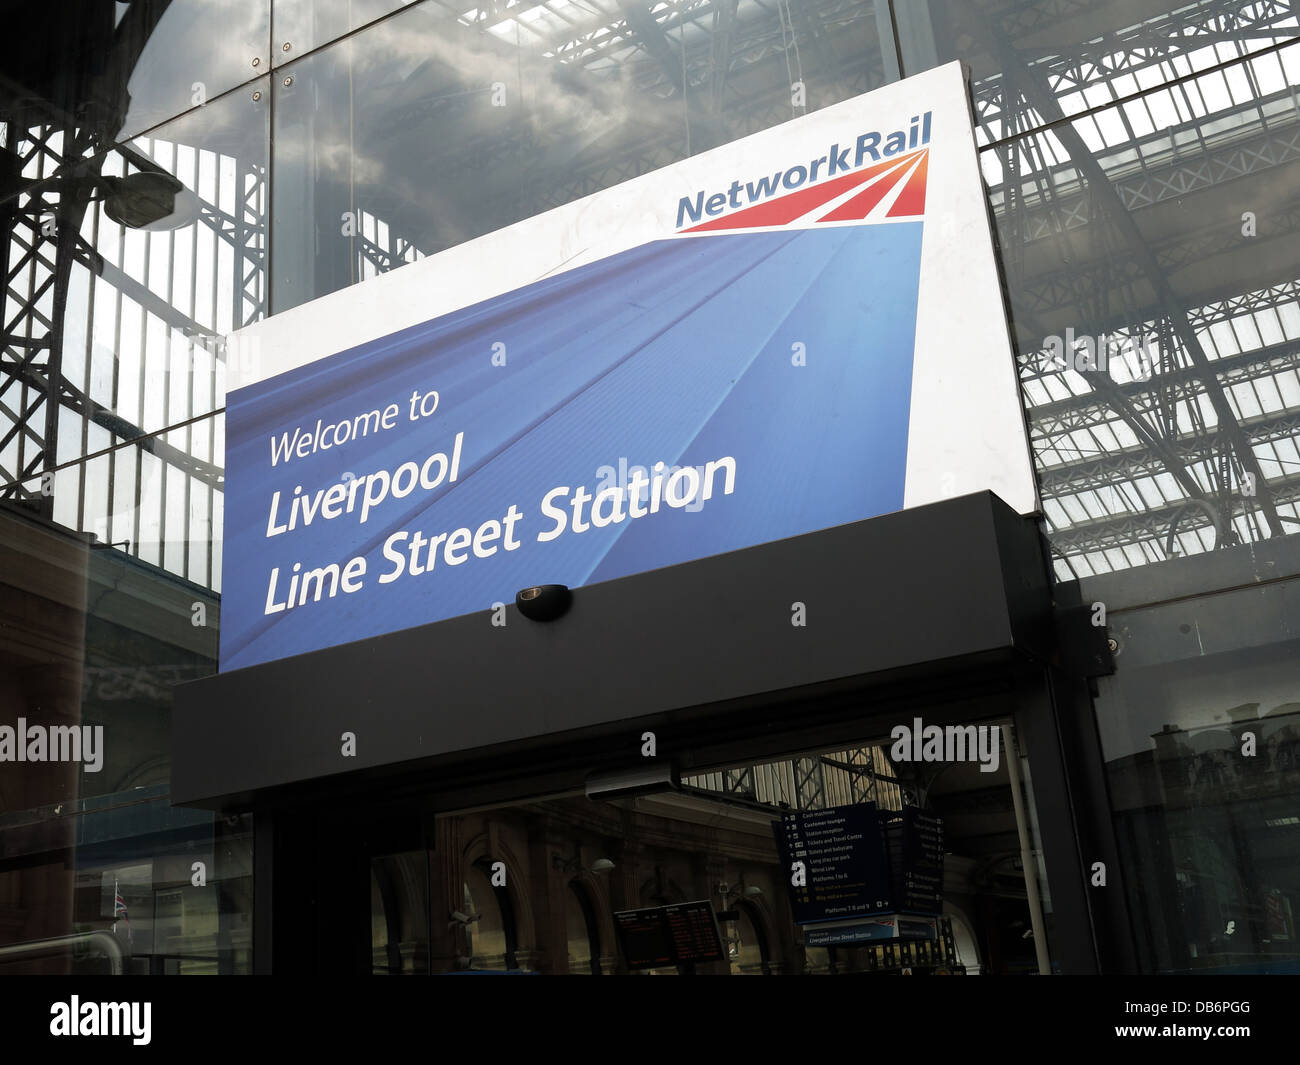 Welcome to Liverpool Lime Street Station sign from Network Rail in English city in front of canopy of mainline station Stock Photo